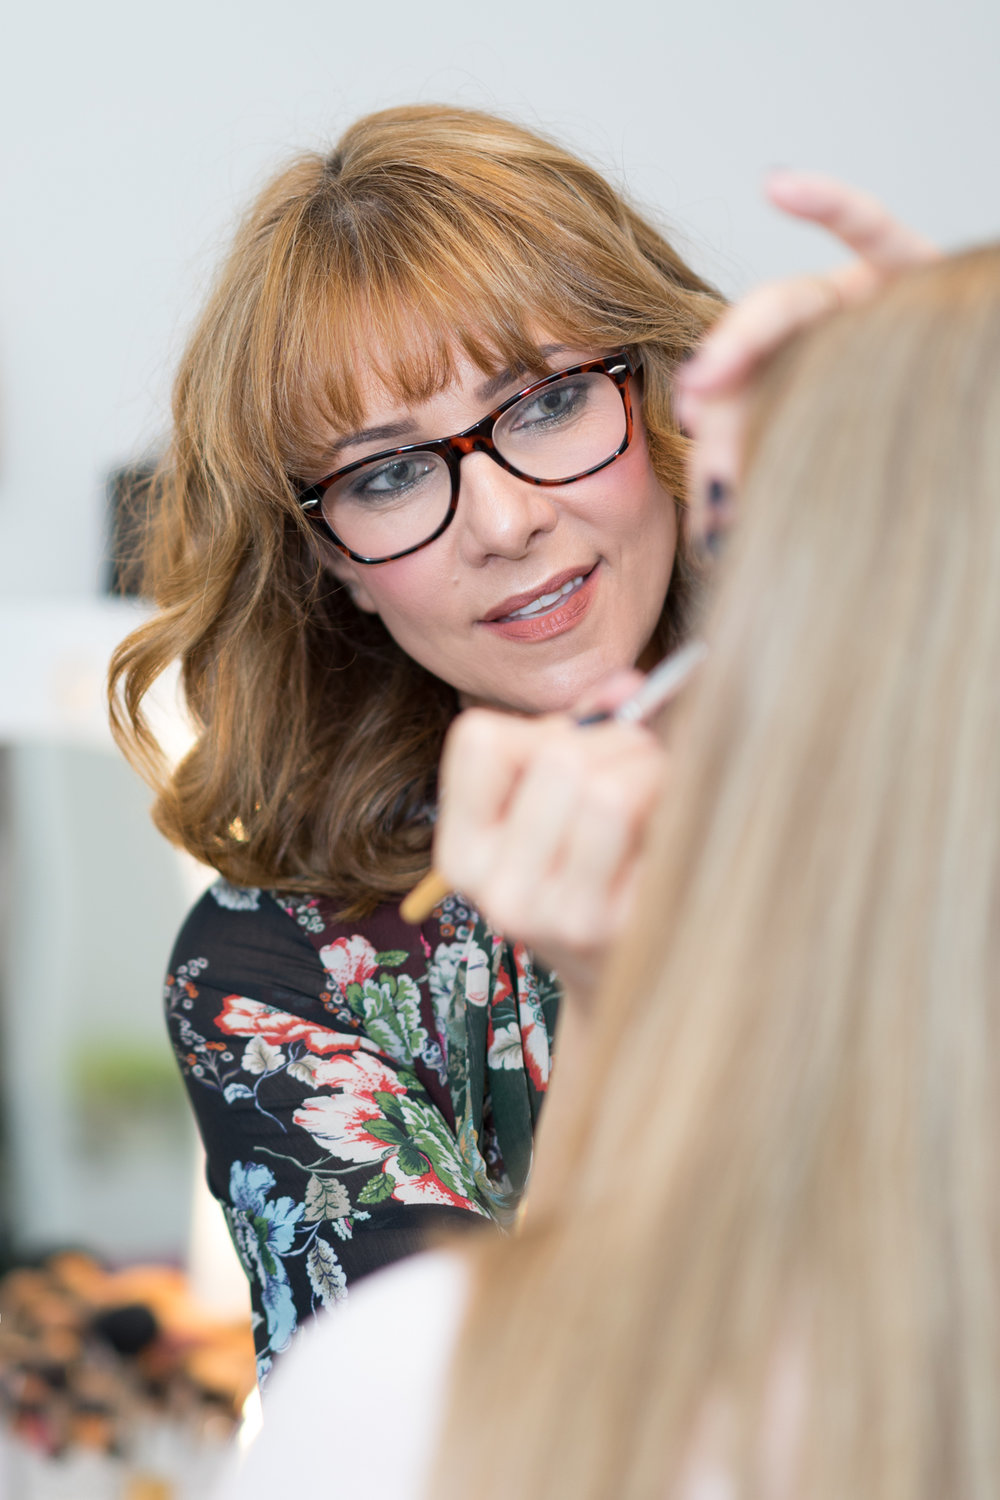 Spend A Day With Me, Winchester photographer, makeup artist, nail artist and stylist Sarah Bacchus